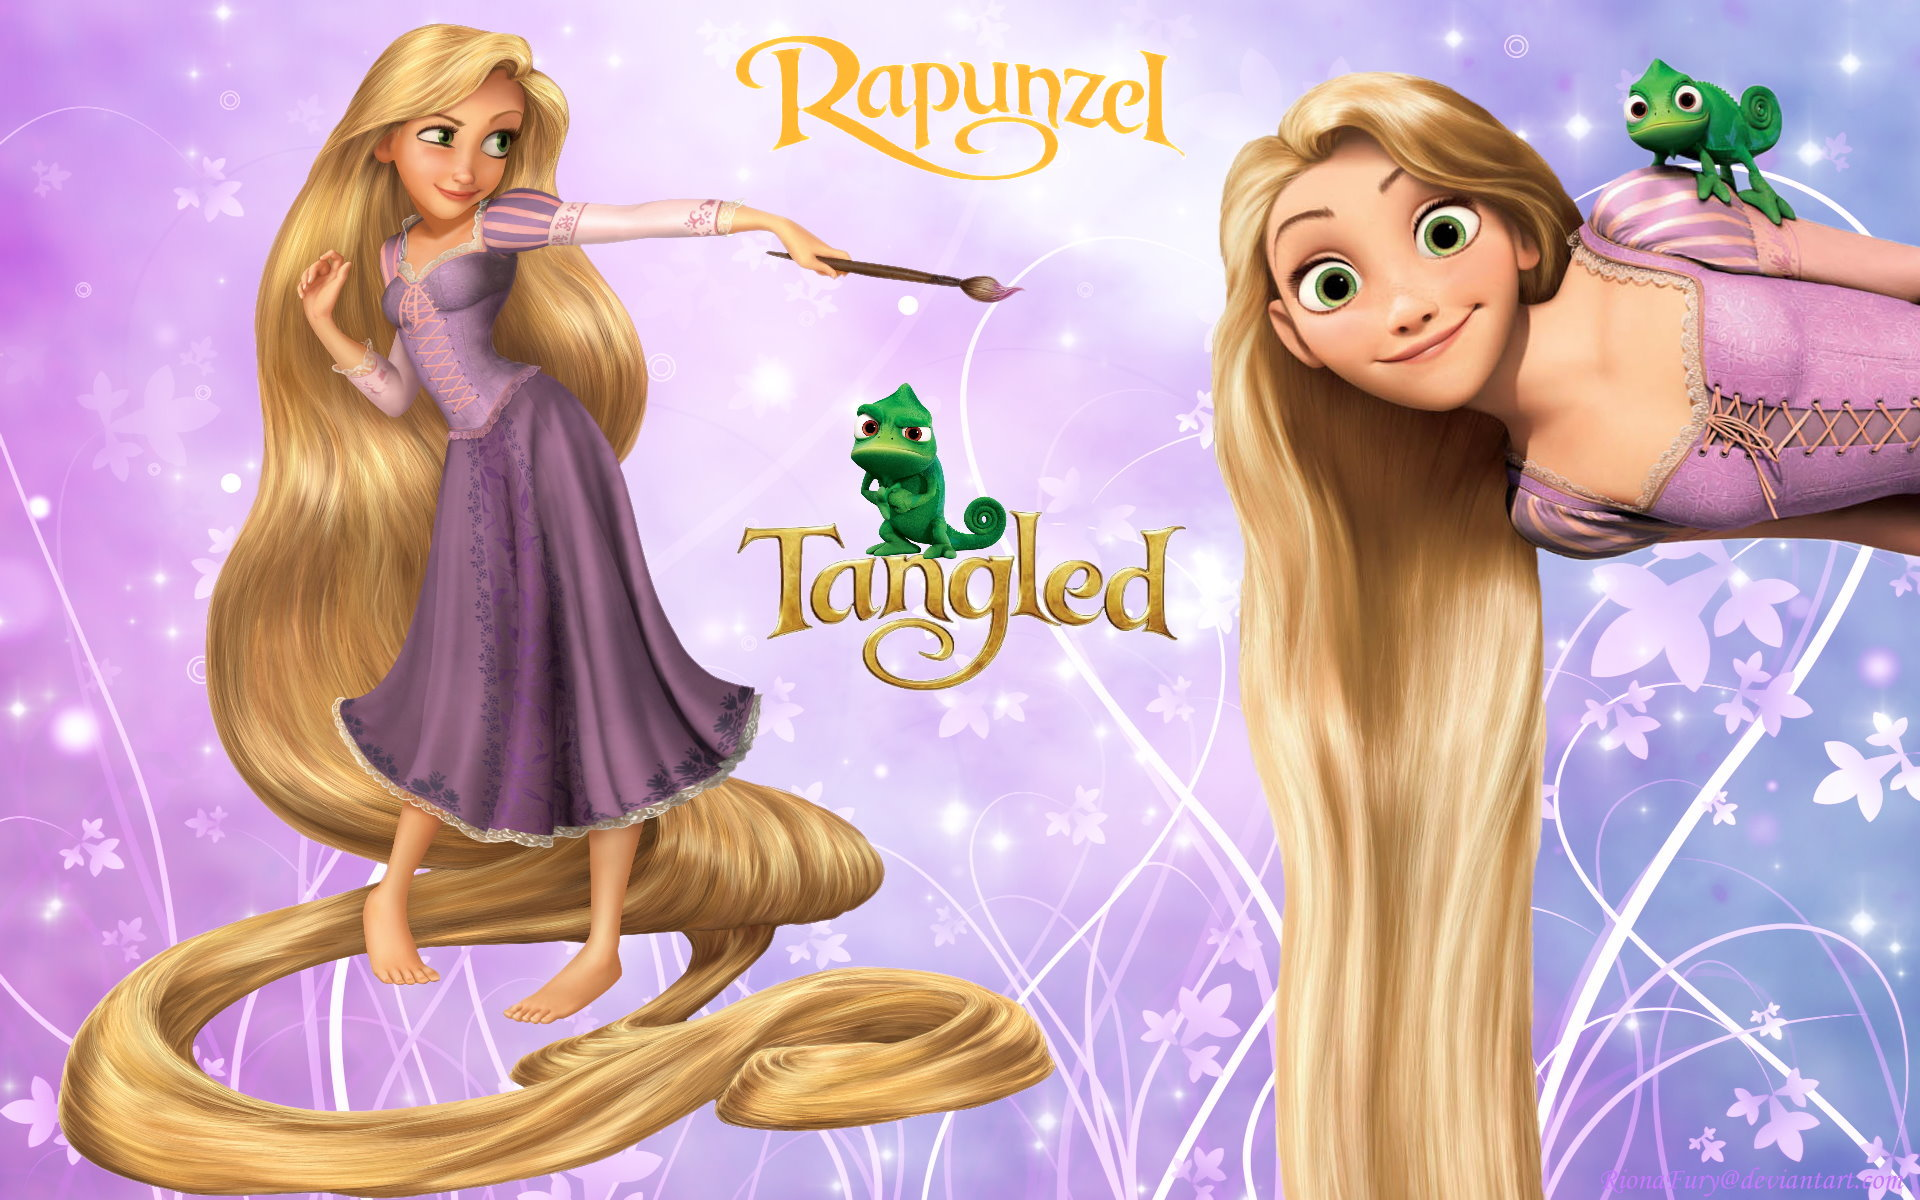 Disney Princess Rapunzel HD wallpaper and background photos 23744590 1920x1200